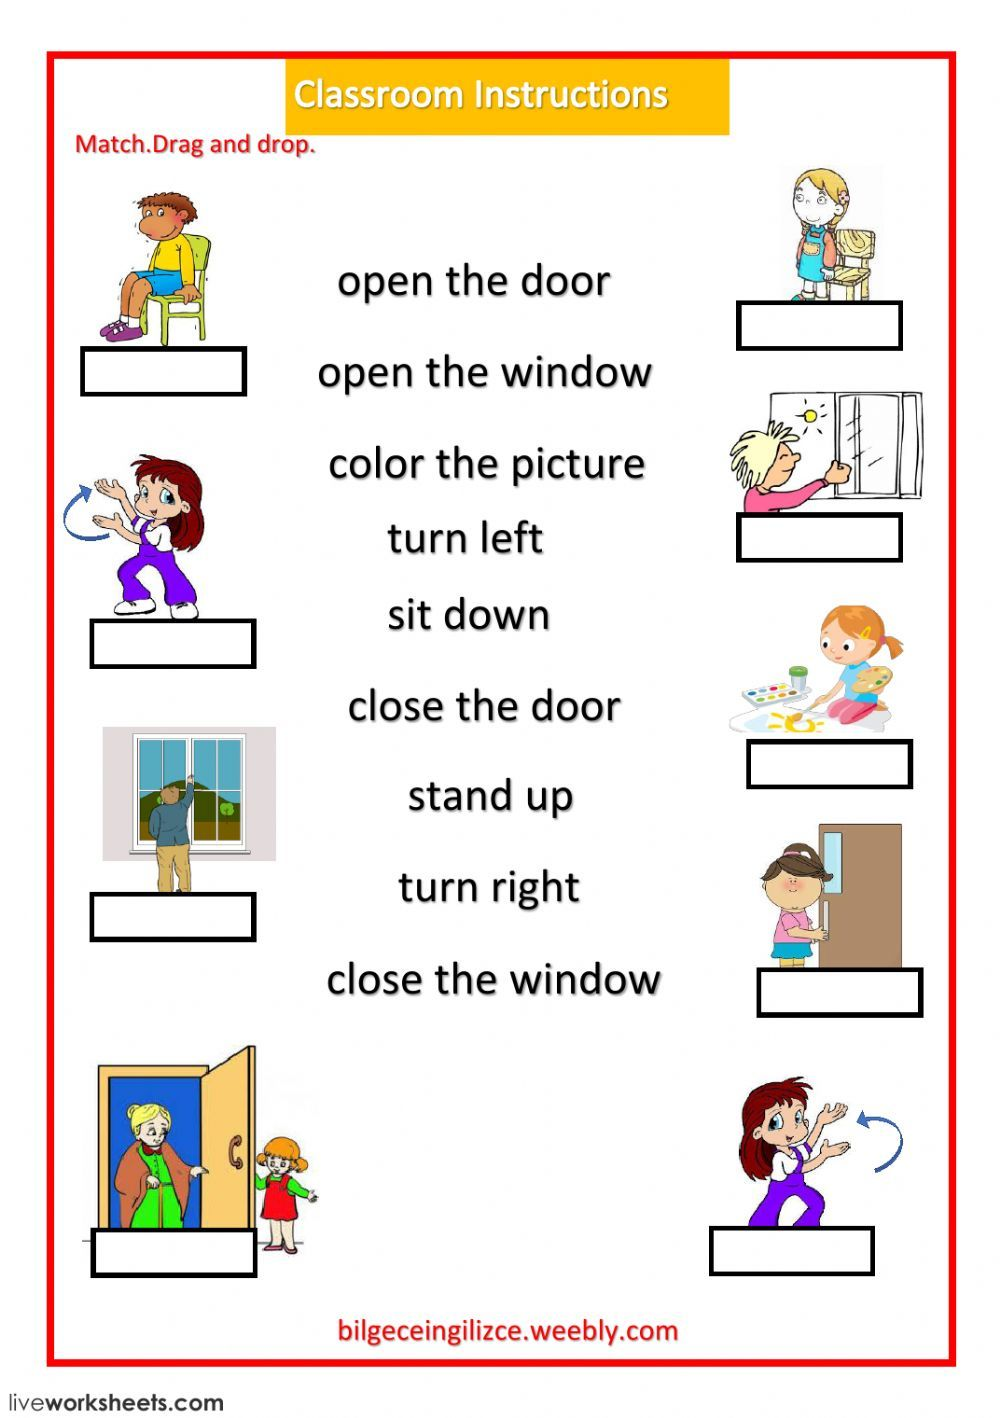 Classroom Language Interactive And Downloadable Worksheet You Can Do The Exercises Online Or Classroom Instruction Classroom Language English Lessons For Kids [ 1418 x 1000 Pixel ]